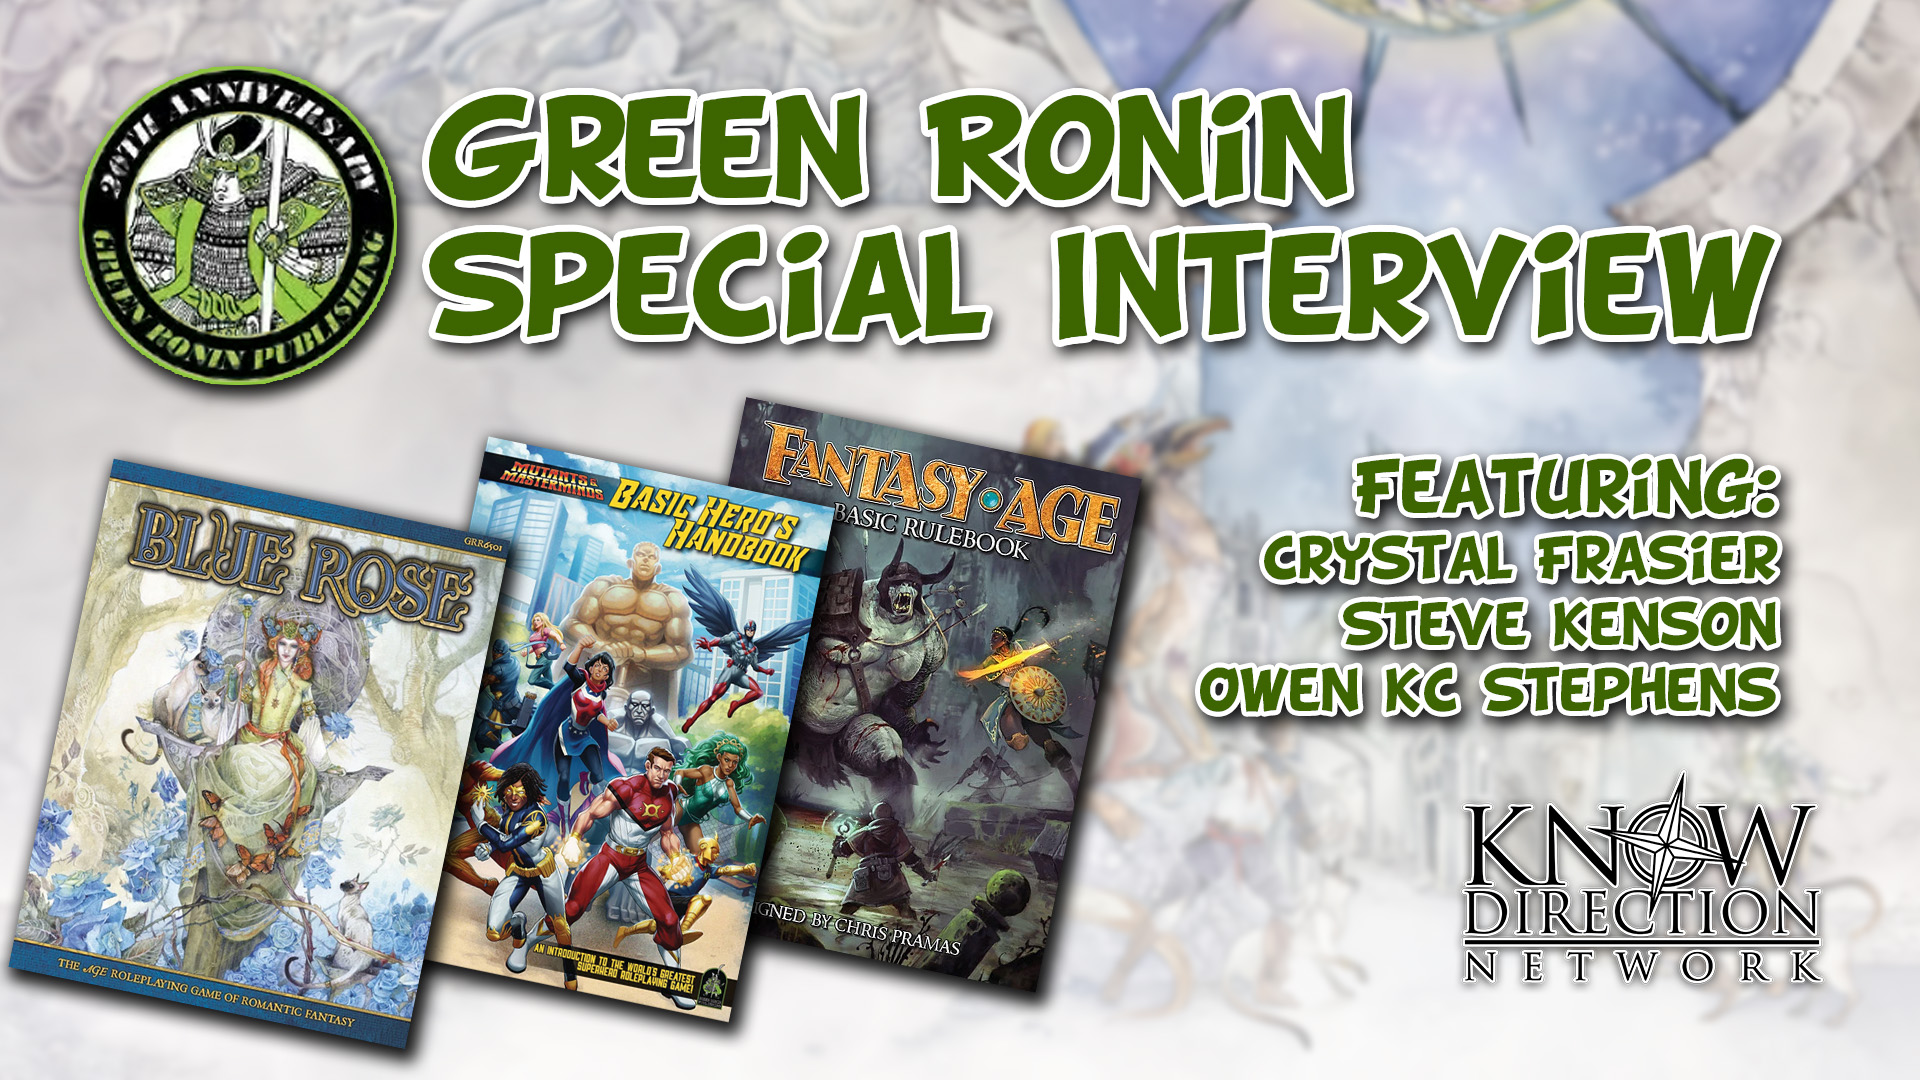 Green Ronin Special Interview with Steve Kenson, Crystal Frasier, and Owen KC Stephens